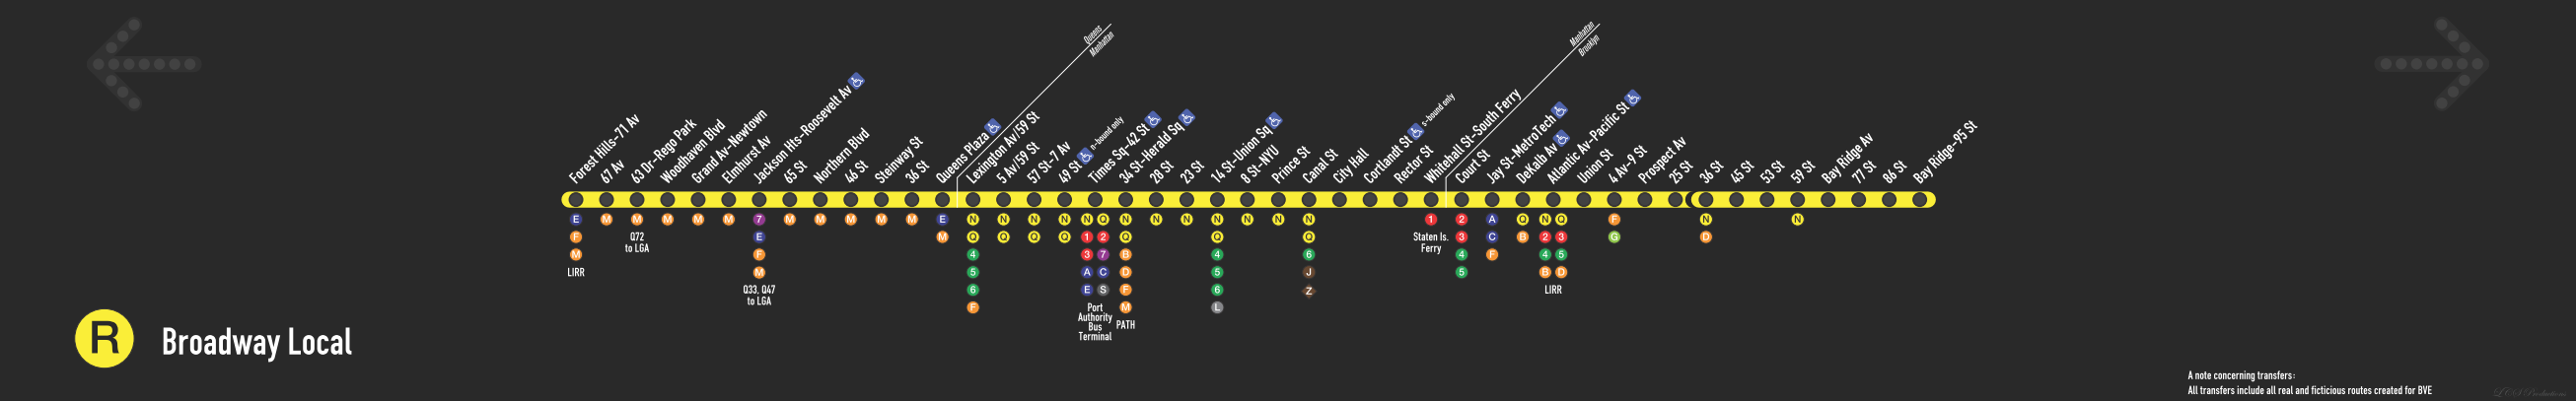 S Train Nyc Map.R142 143 Strip Maps Version 3 0 Artwork And Graphic Design Nyc